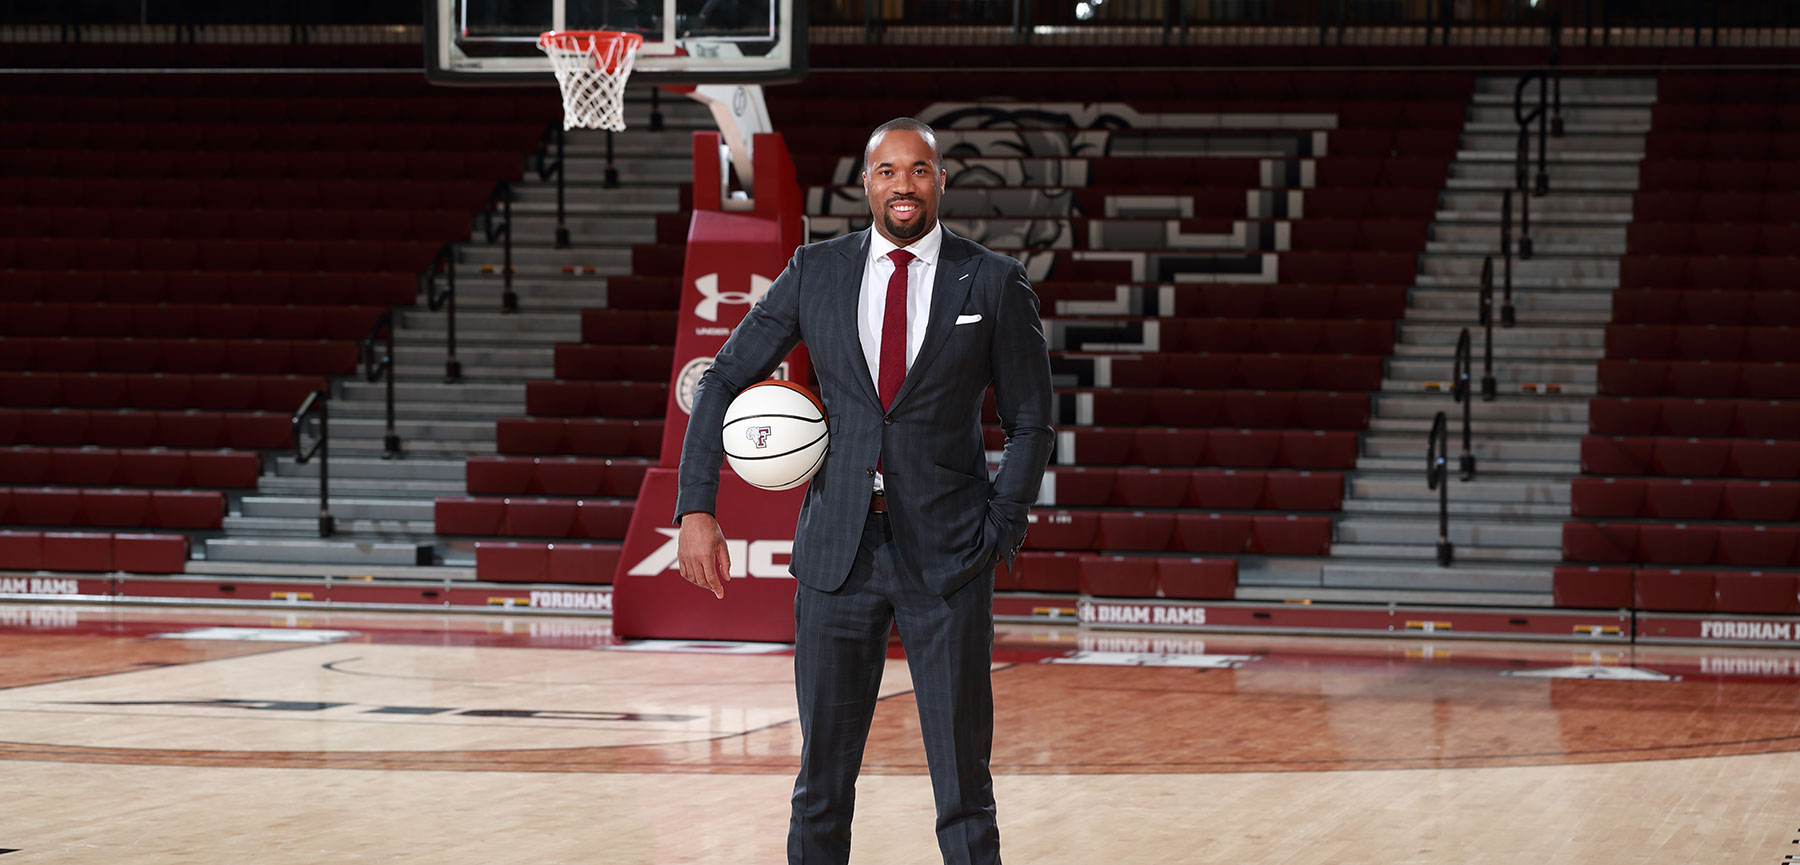 Fordham Hires Kyle Neptune as Head Men's Basketball Coach